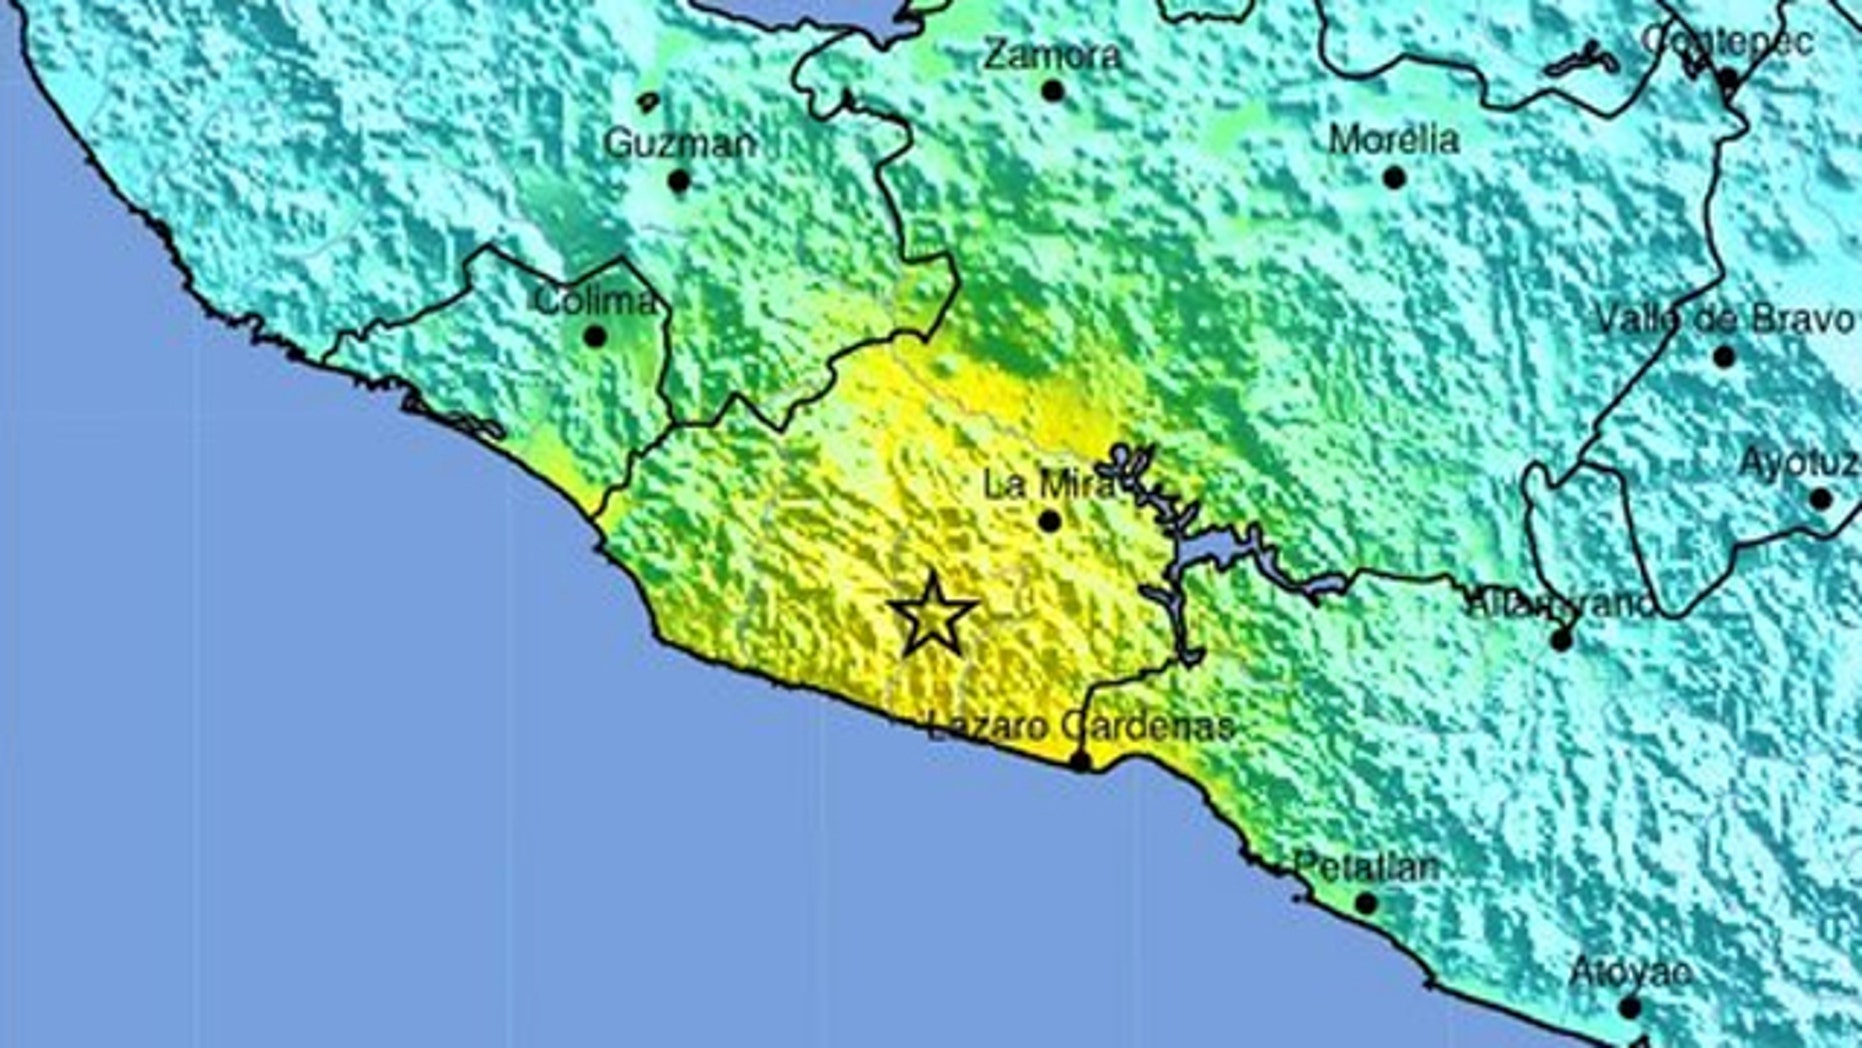 This map shows the location of a magnitude 7.0 earthquake that struck off the coast of Mexico on April 11, 2012.